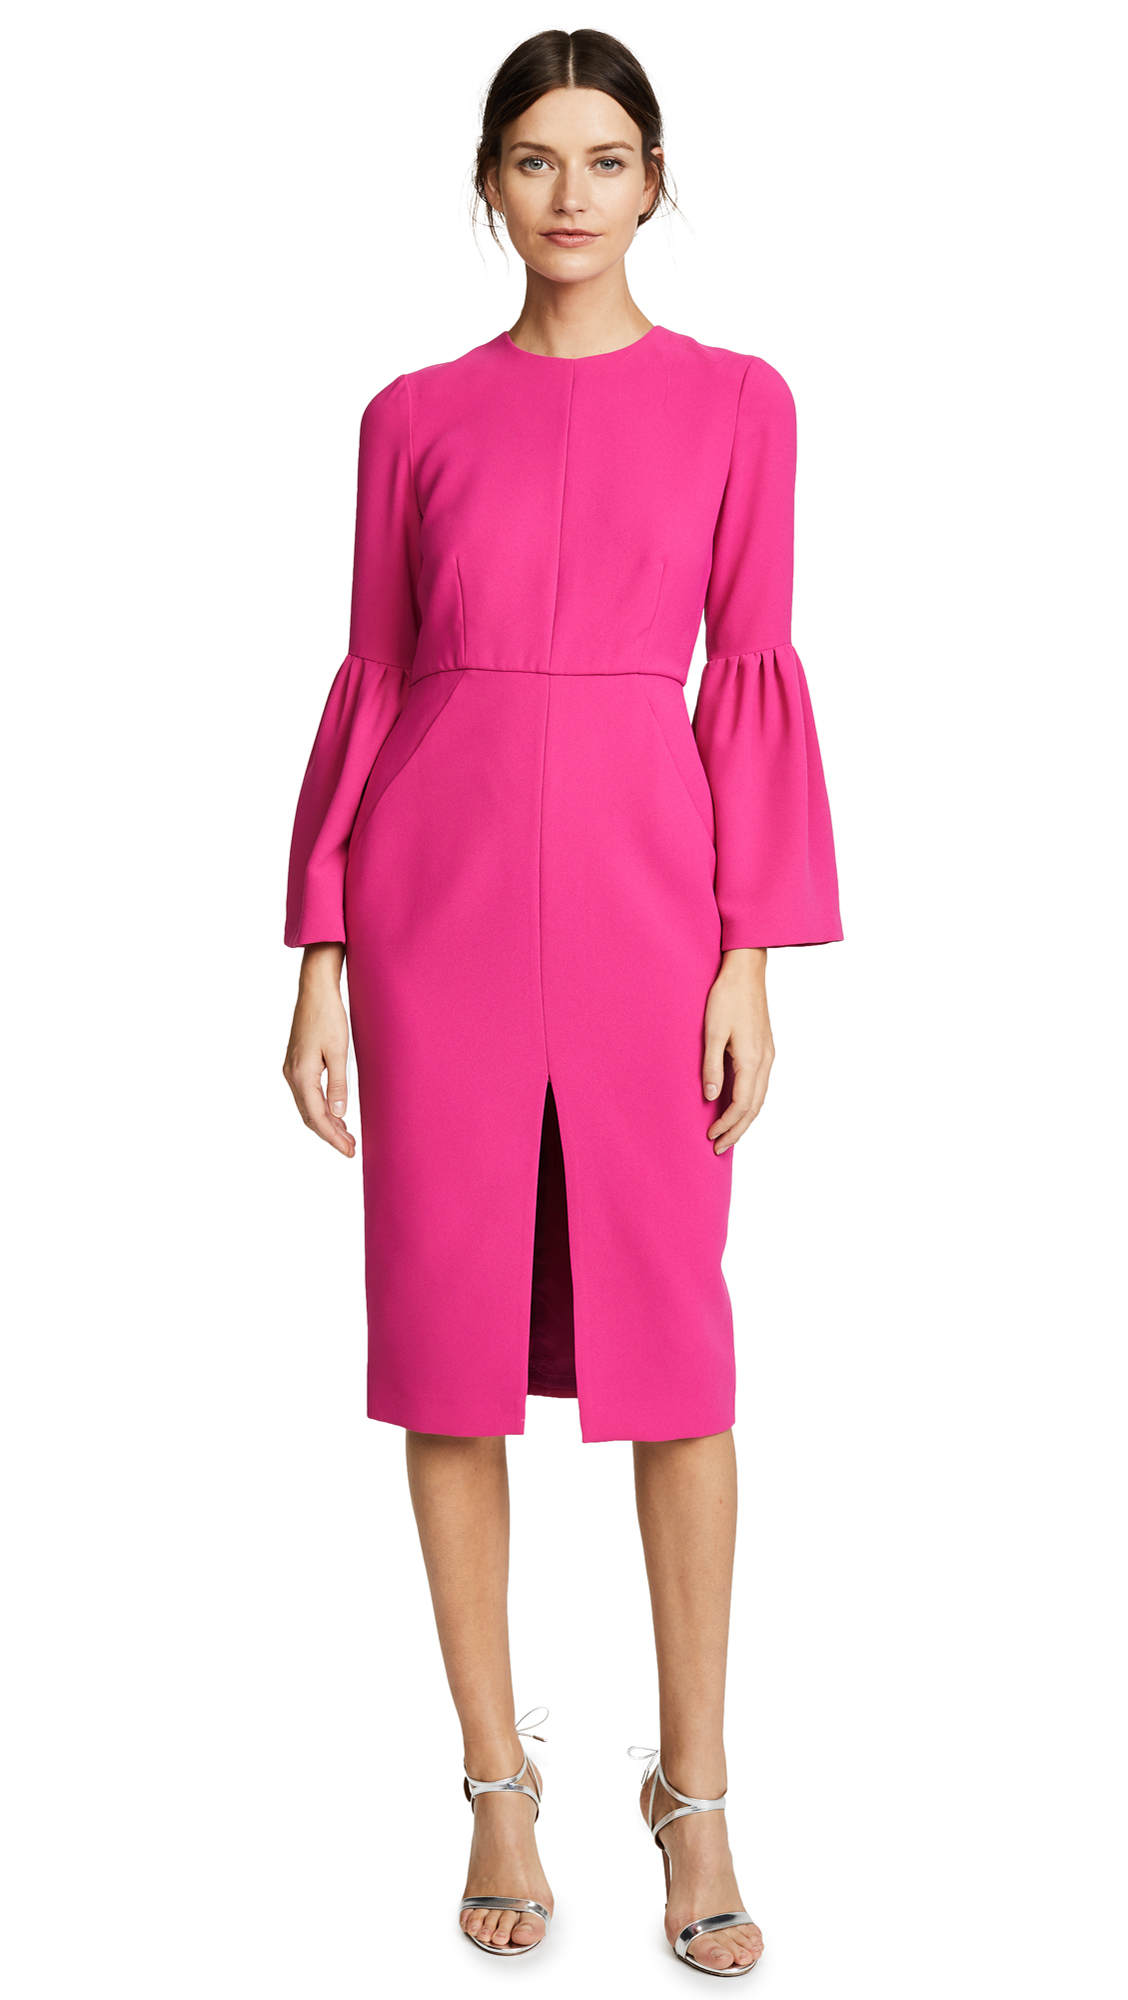 Jill Jill Stuart Bell Sleeved Dress - Begonia Pink